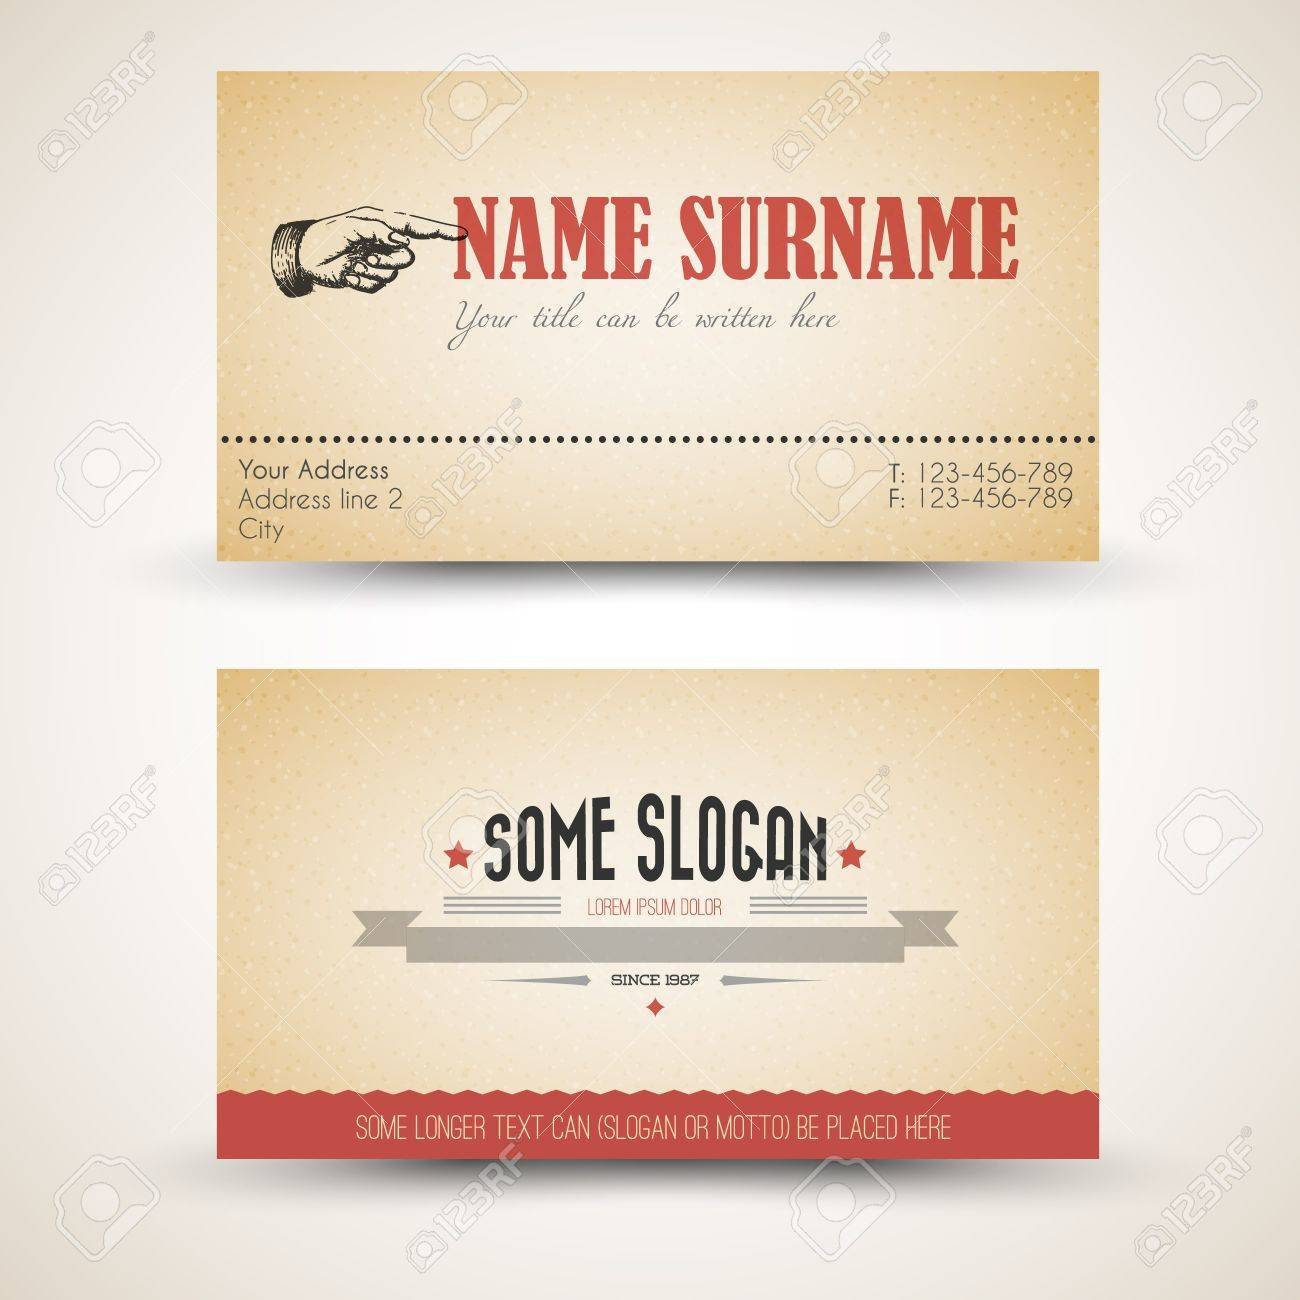 Old-style Retro Vintage Business Card Template - Both Front And ...